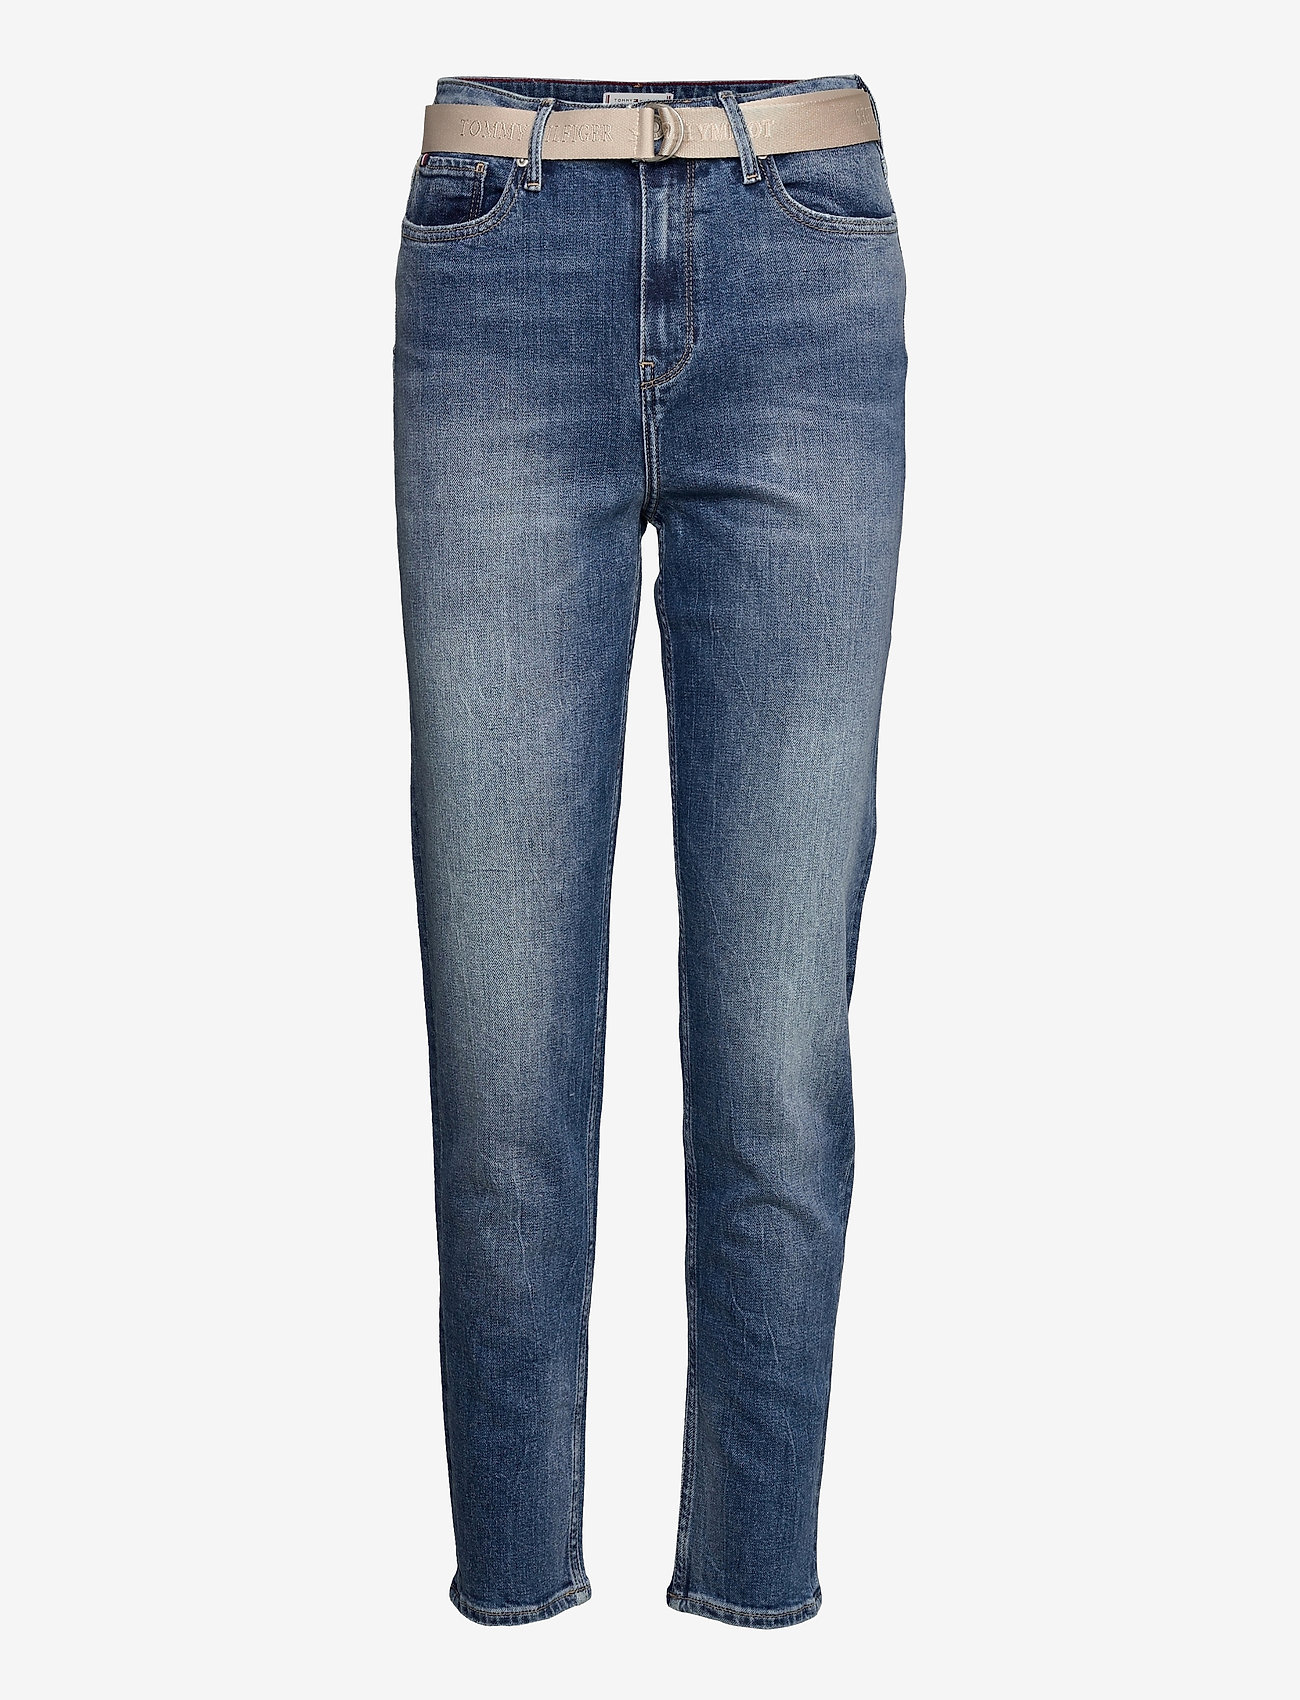 Tommy Hilfiger - GRAMERCY TAPERED HW A LUS - straight jeans - lus - 0